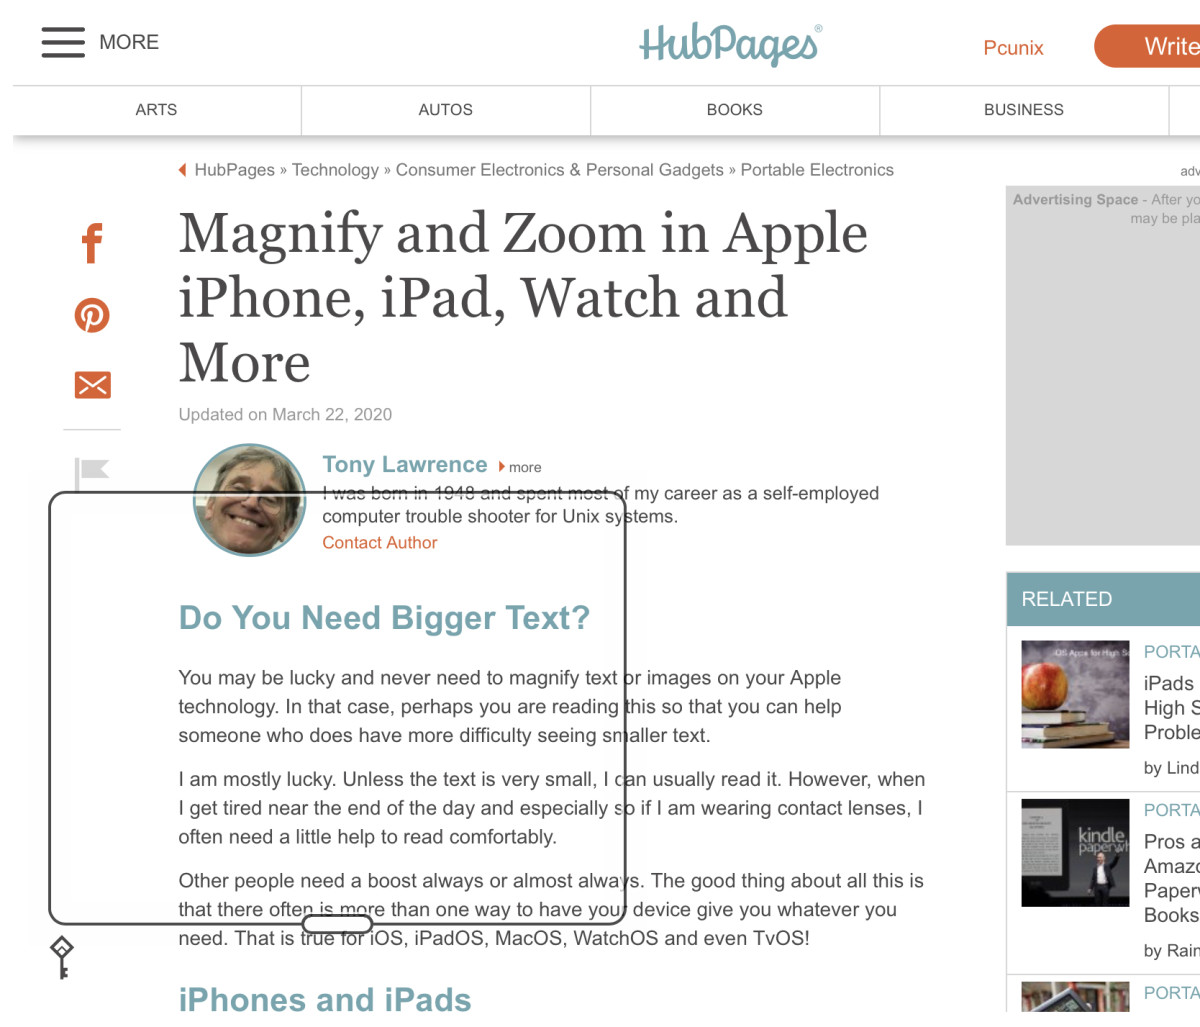 Magnify and Zoom in Apple iPhone, iPad, Watch and More